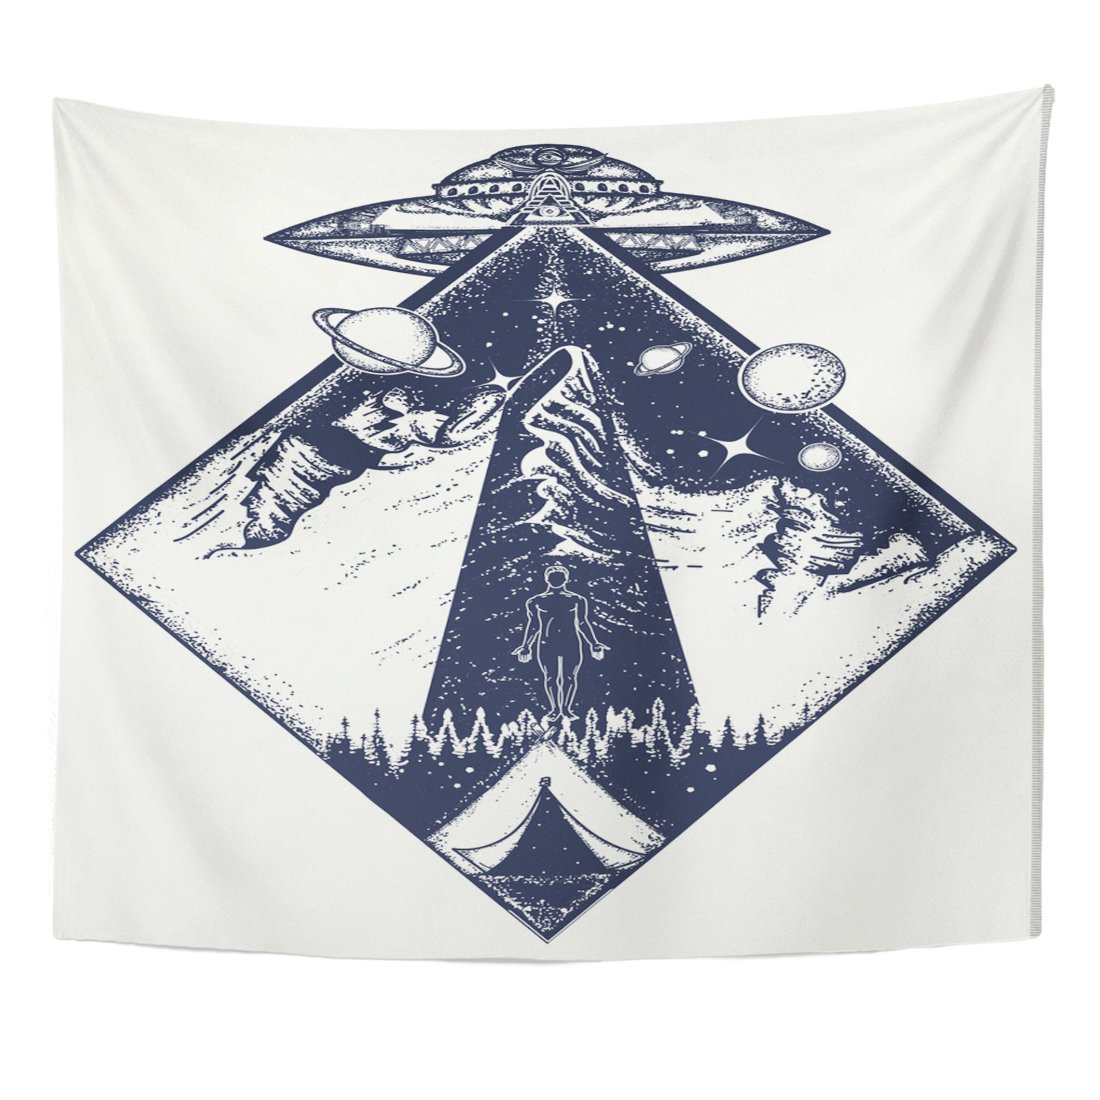 VaryHome Tapestry Ufo Tattoo and Invasion of Aliens Kidnap Human Mystical Symbol Paranormal Phenomena First Contact Home Decor Wall Hanging for Living Room Bedroom Dorm 50x60 Inches